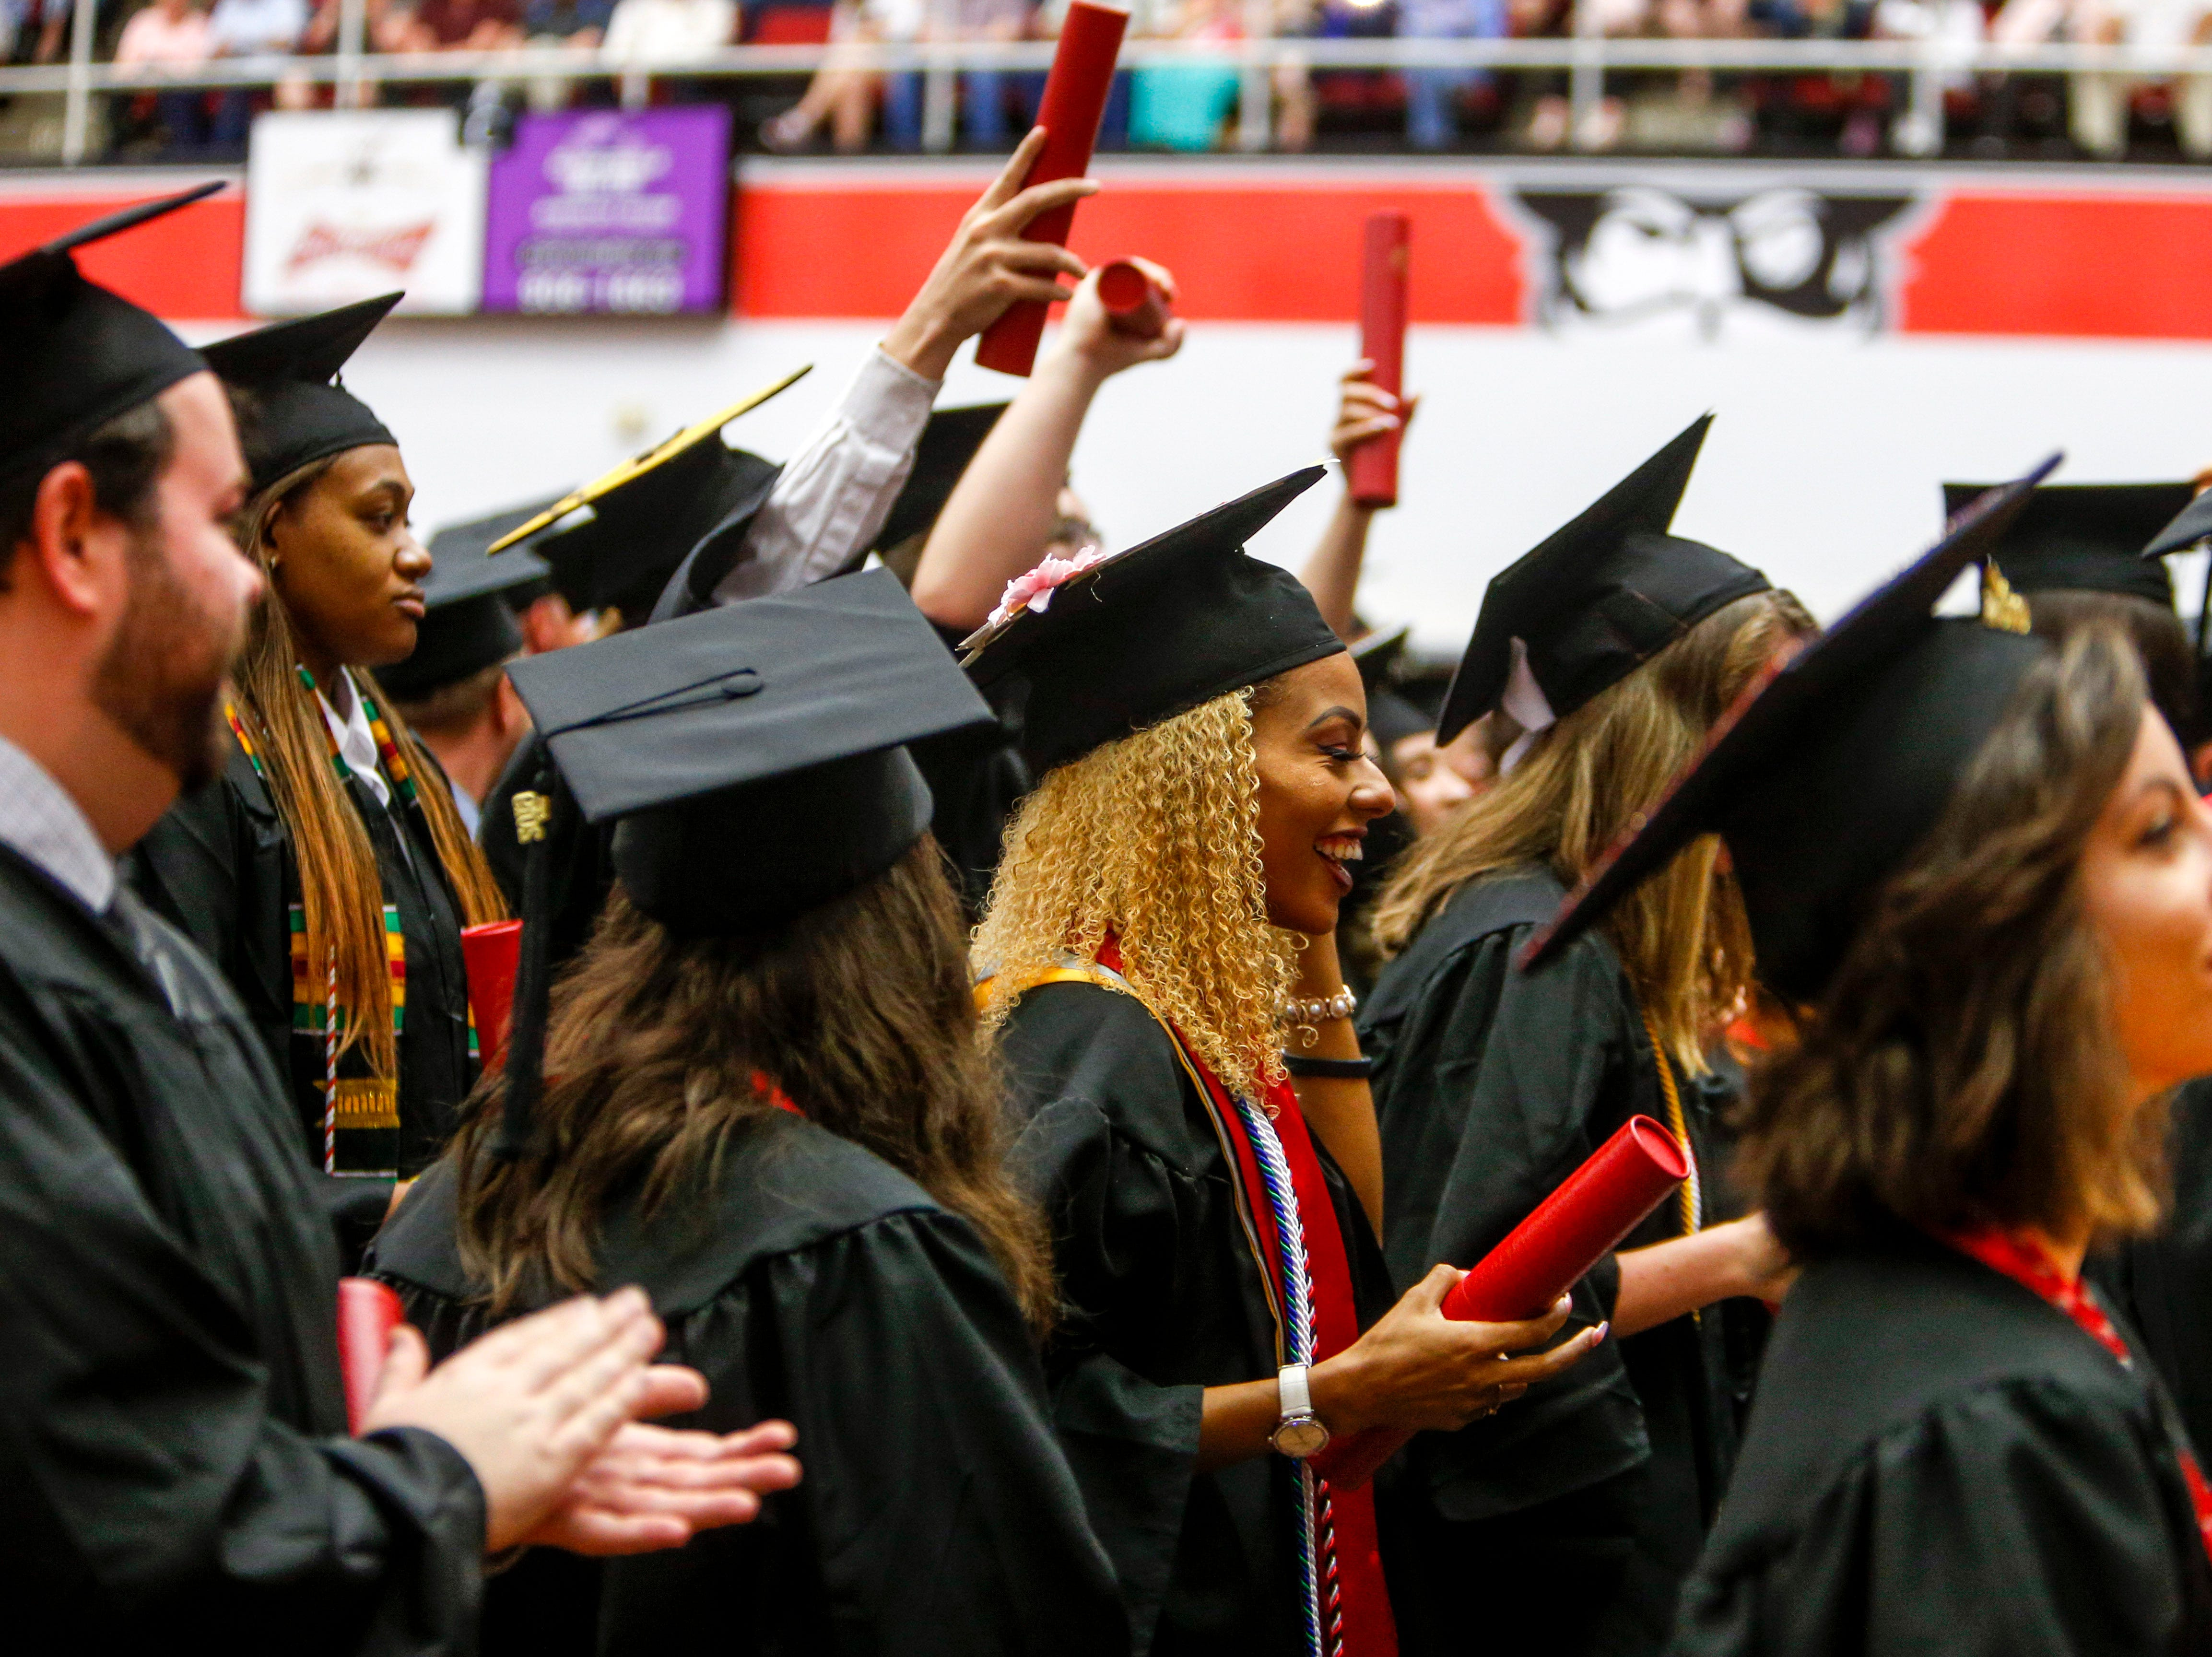 APSU students cheer for fellow graduates at the Austin Peay spring commencement ceremony 2019 for College of Business and College of STEM at Winfield Dunn Center in Clarksville, Tenn., on Friday, May 3, 2019.